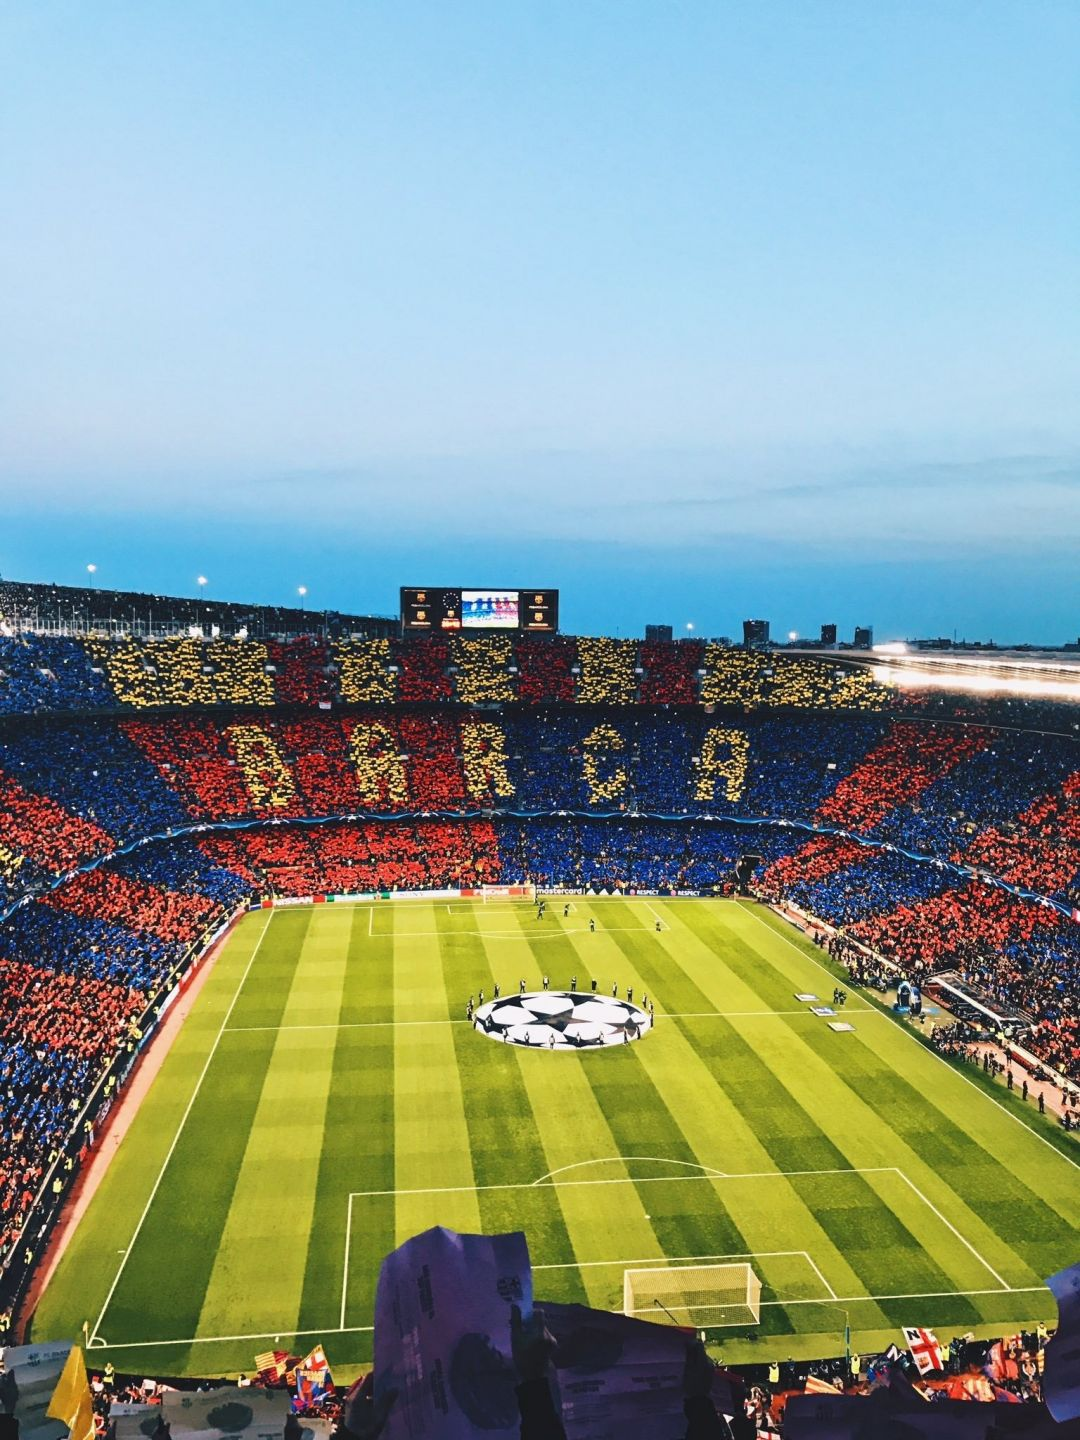 75 Fc Barcelona Android Iphone Desktop Hd Backgrounds Wallpapers 1080p 4k 1536x2048 2021